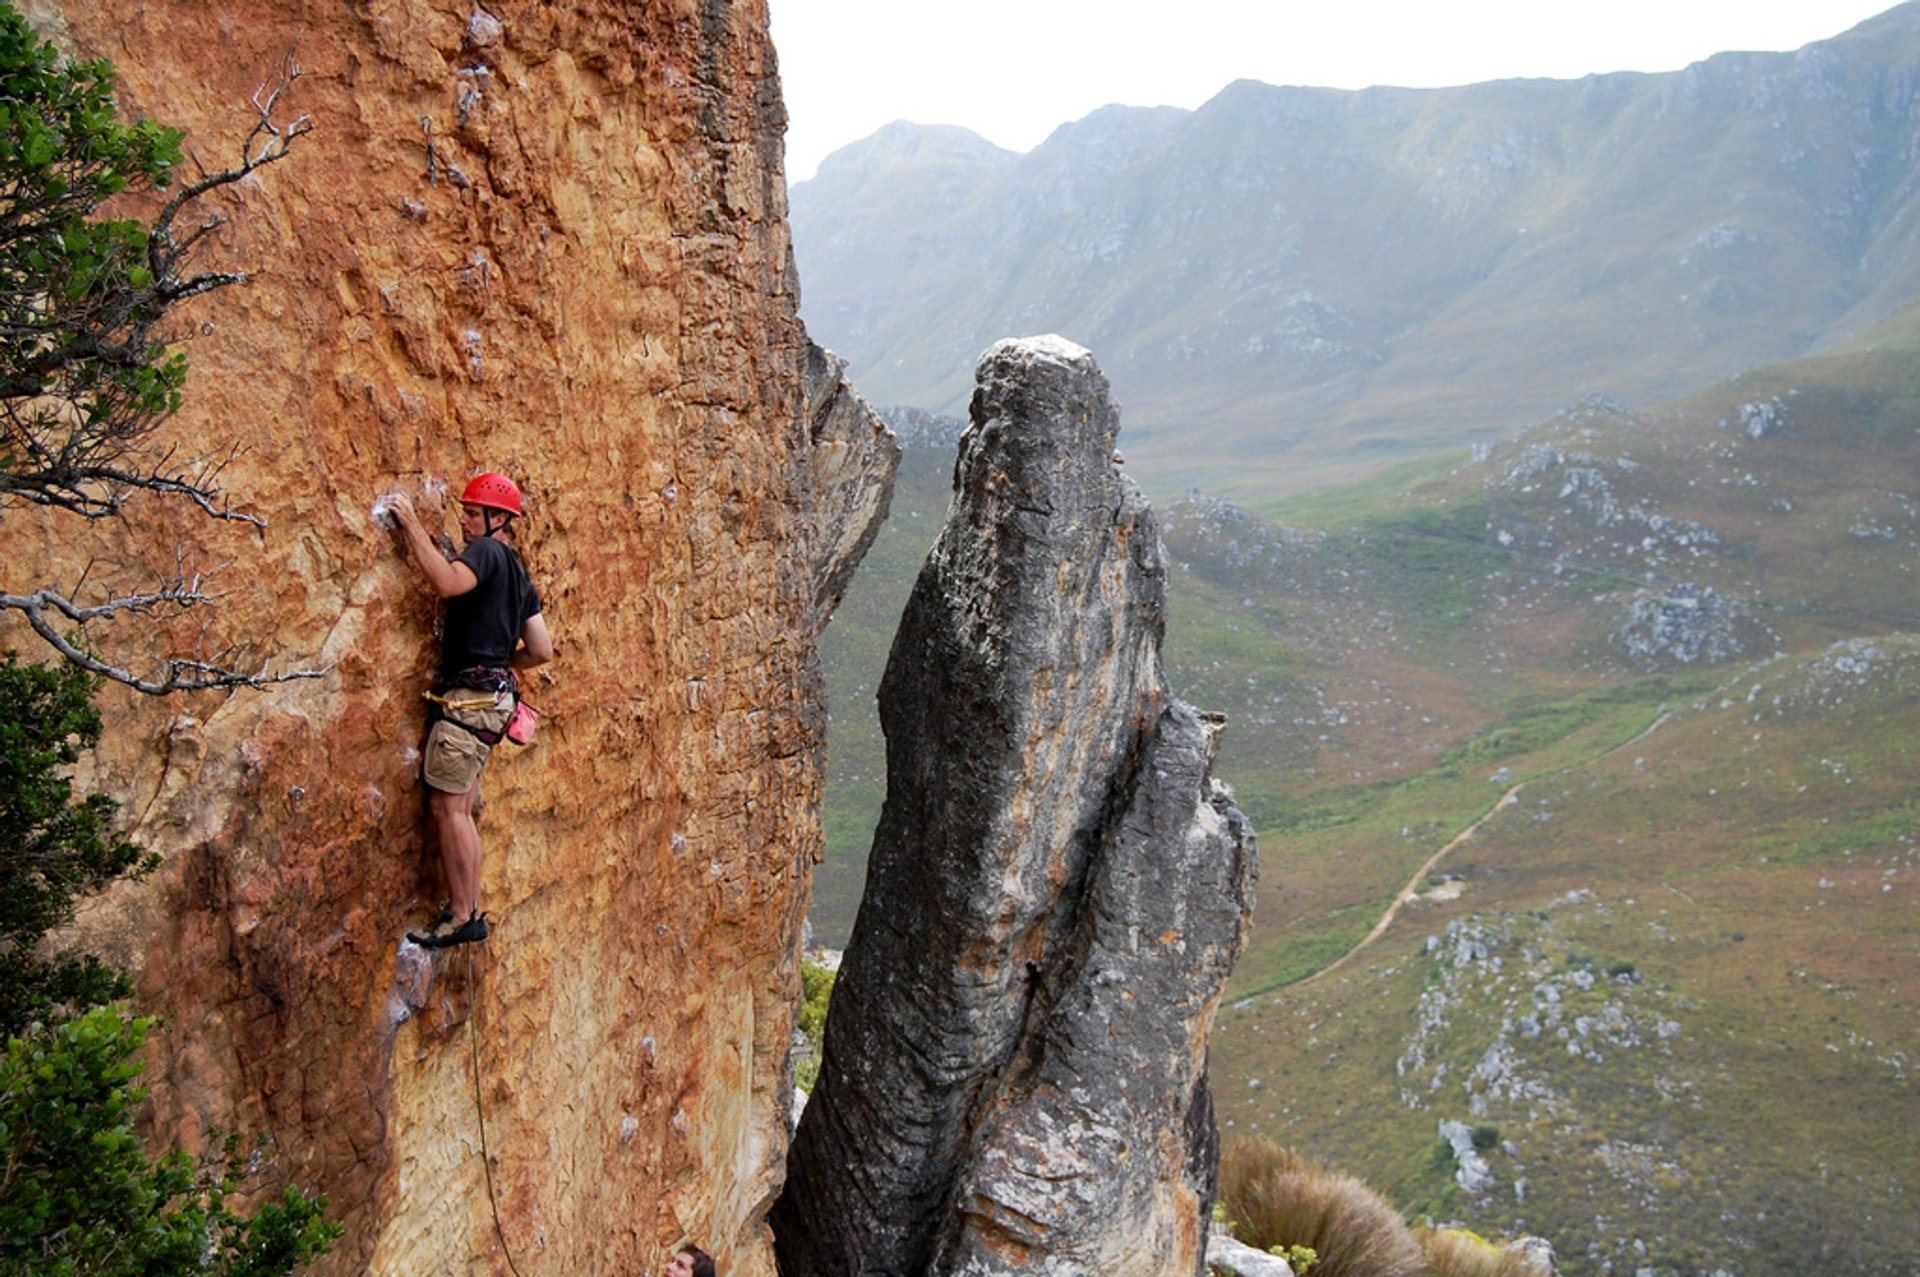 Rock Climbing in South Africa 2020 - Best Time